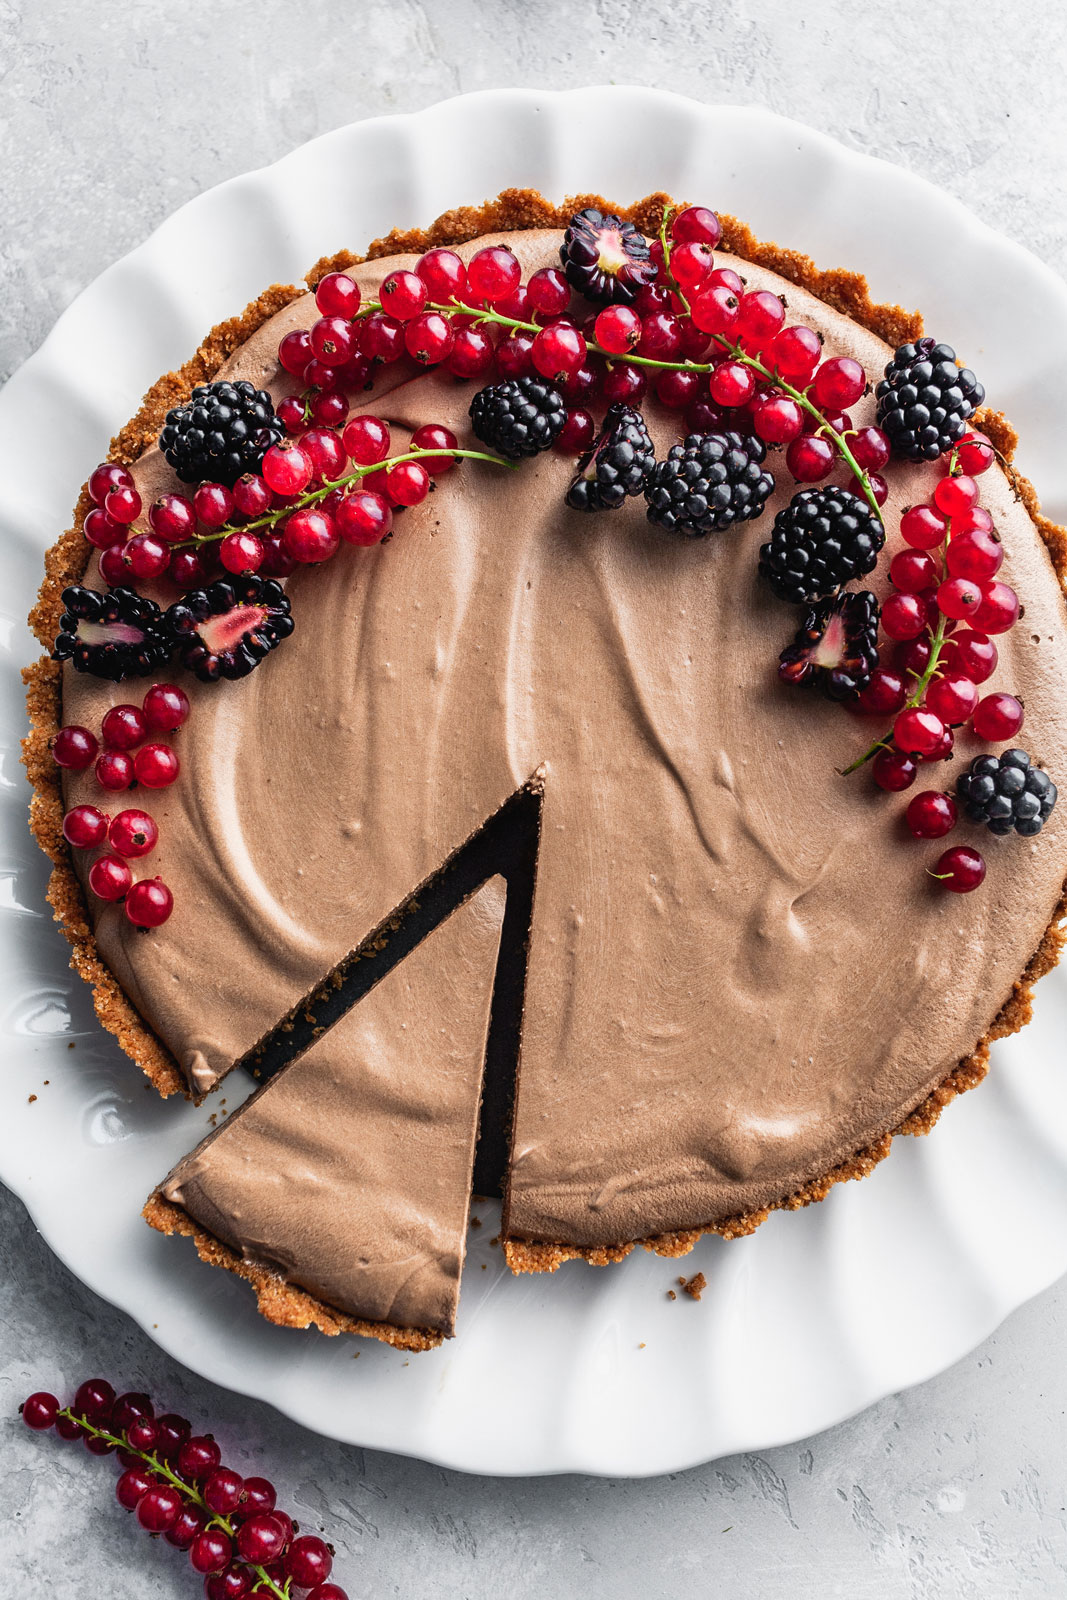 Chocolate Espresso Silk Pie